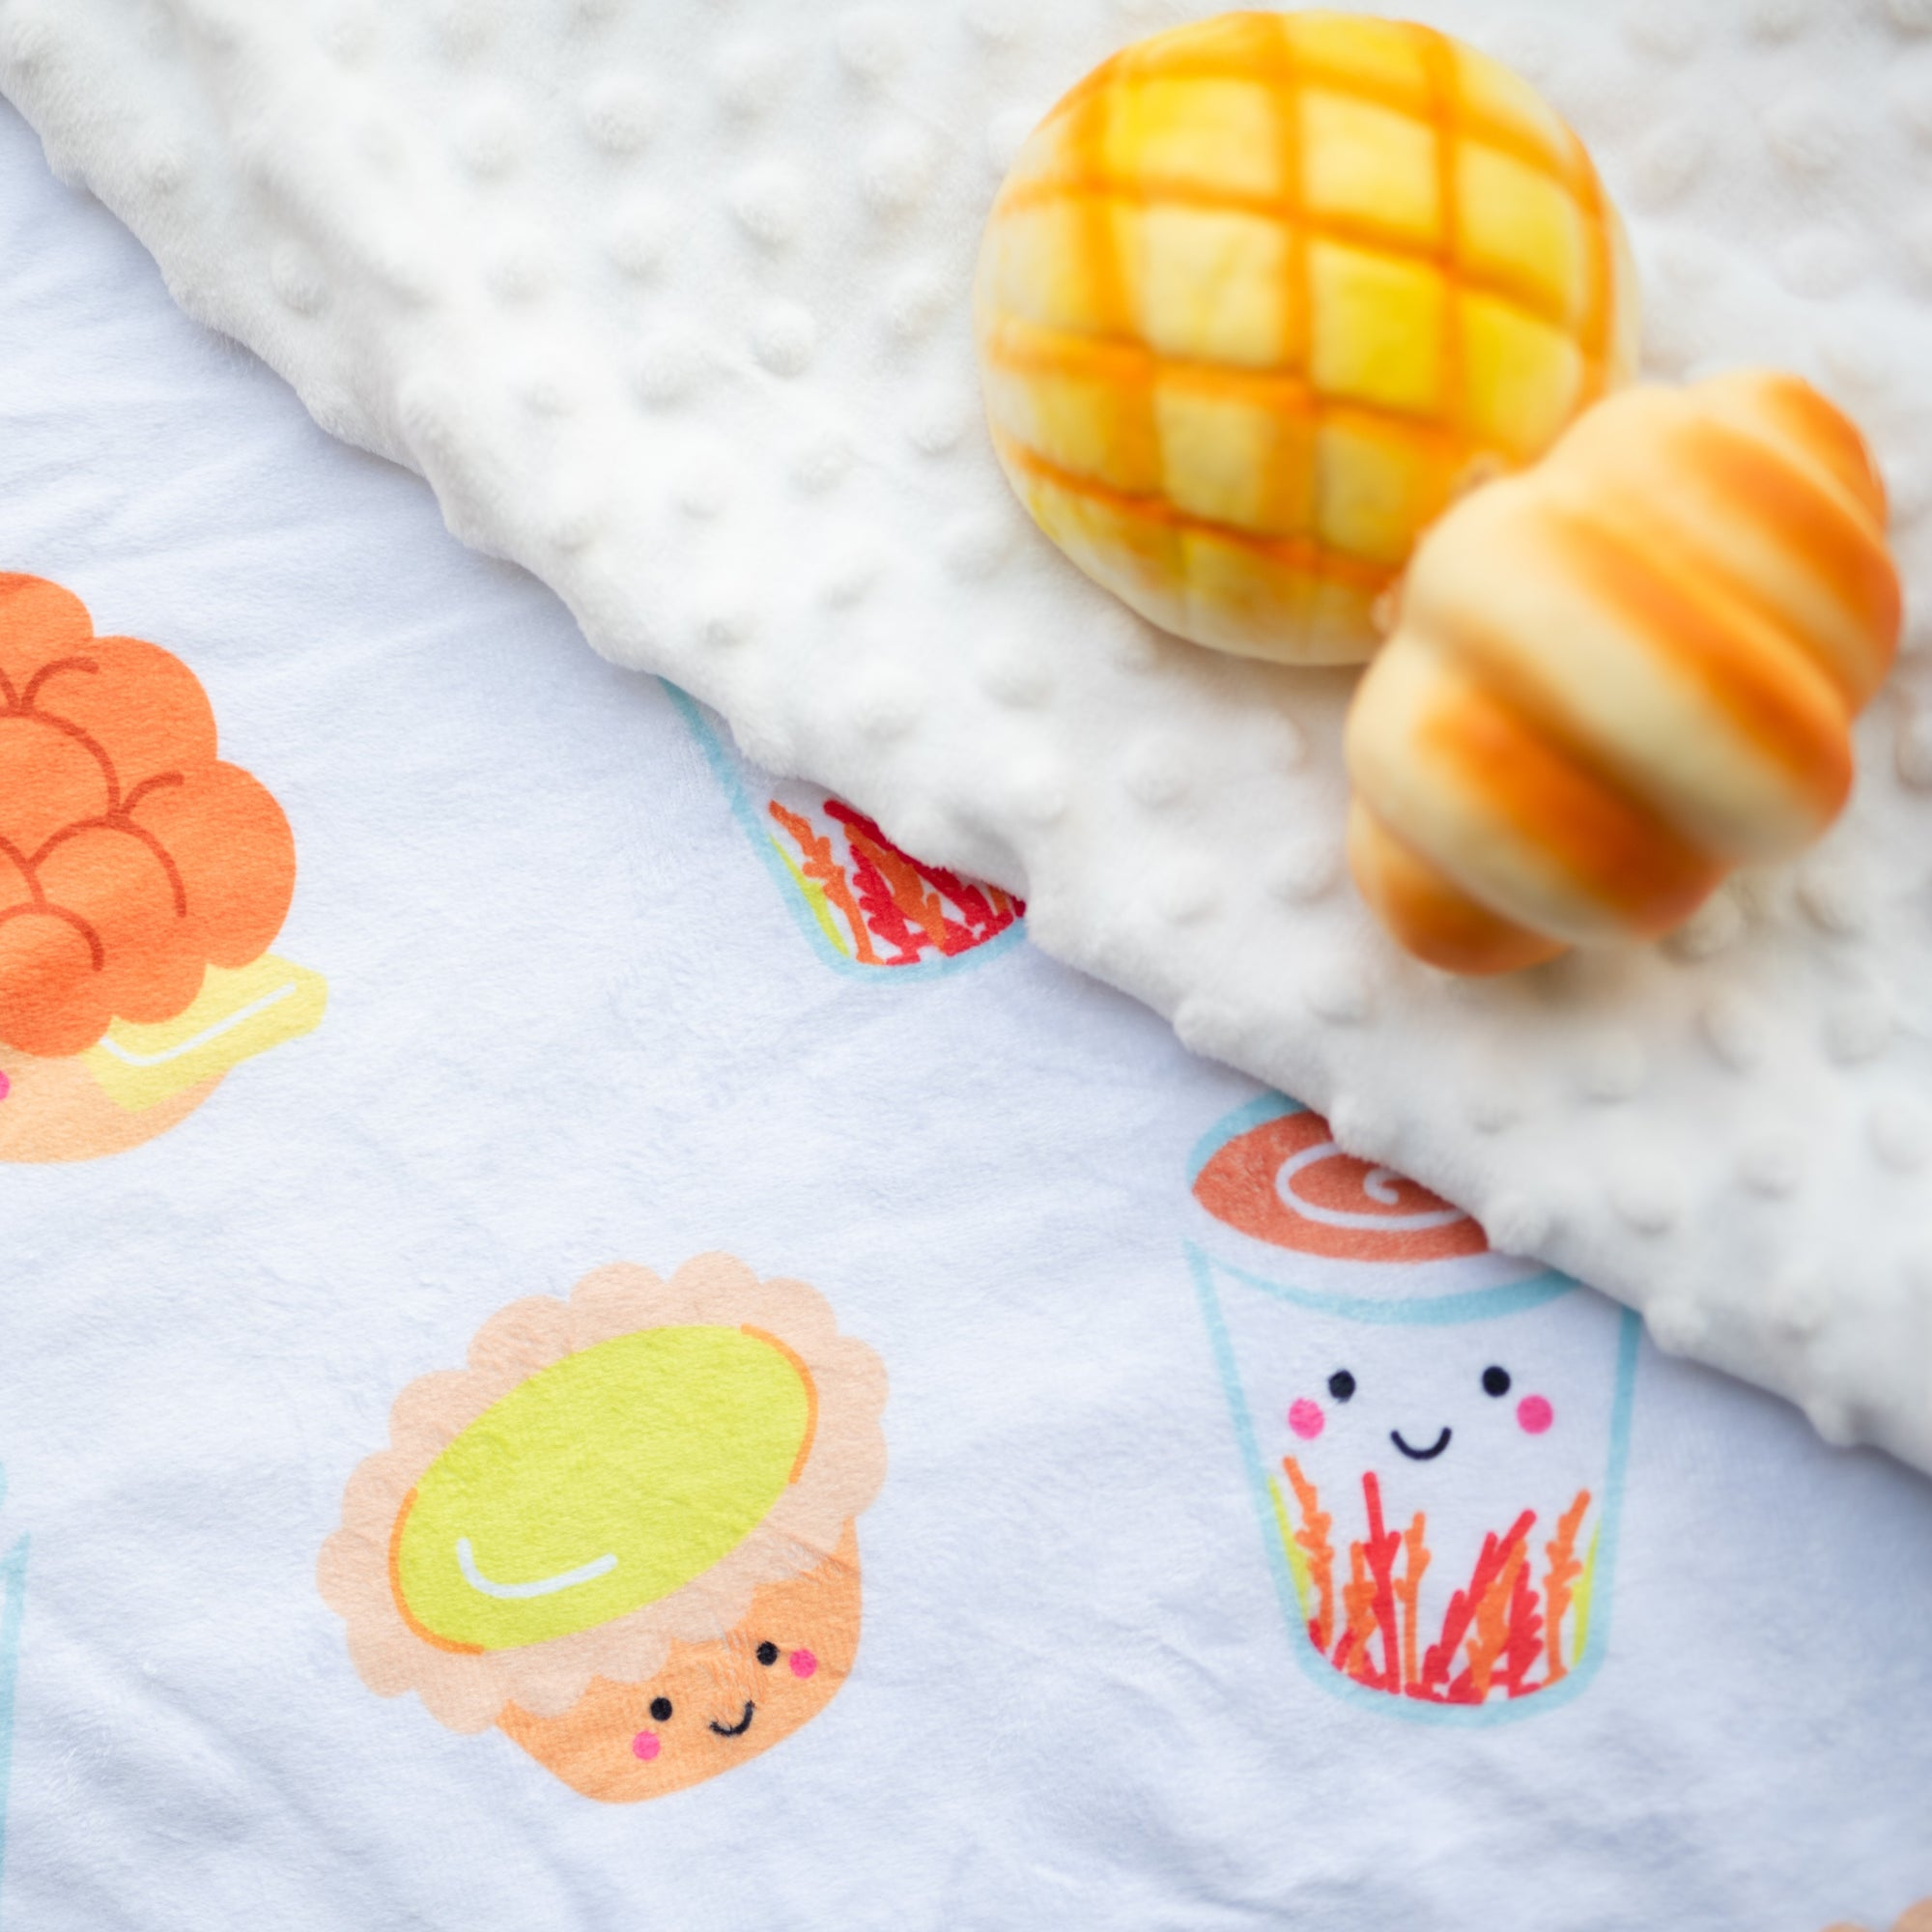 minky fleece soft baby blanket flat lay cha chaan teng taste of hong kong milk tea pineapple bun egg tart the wee bean